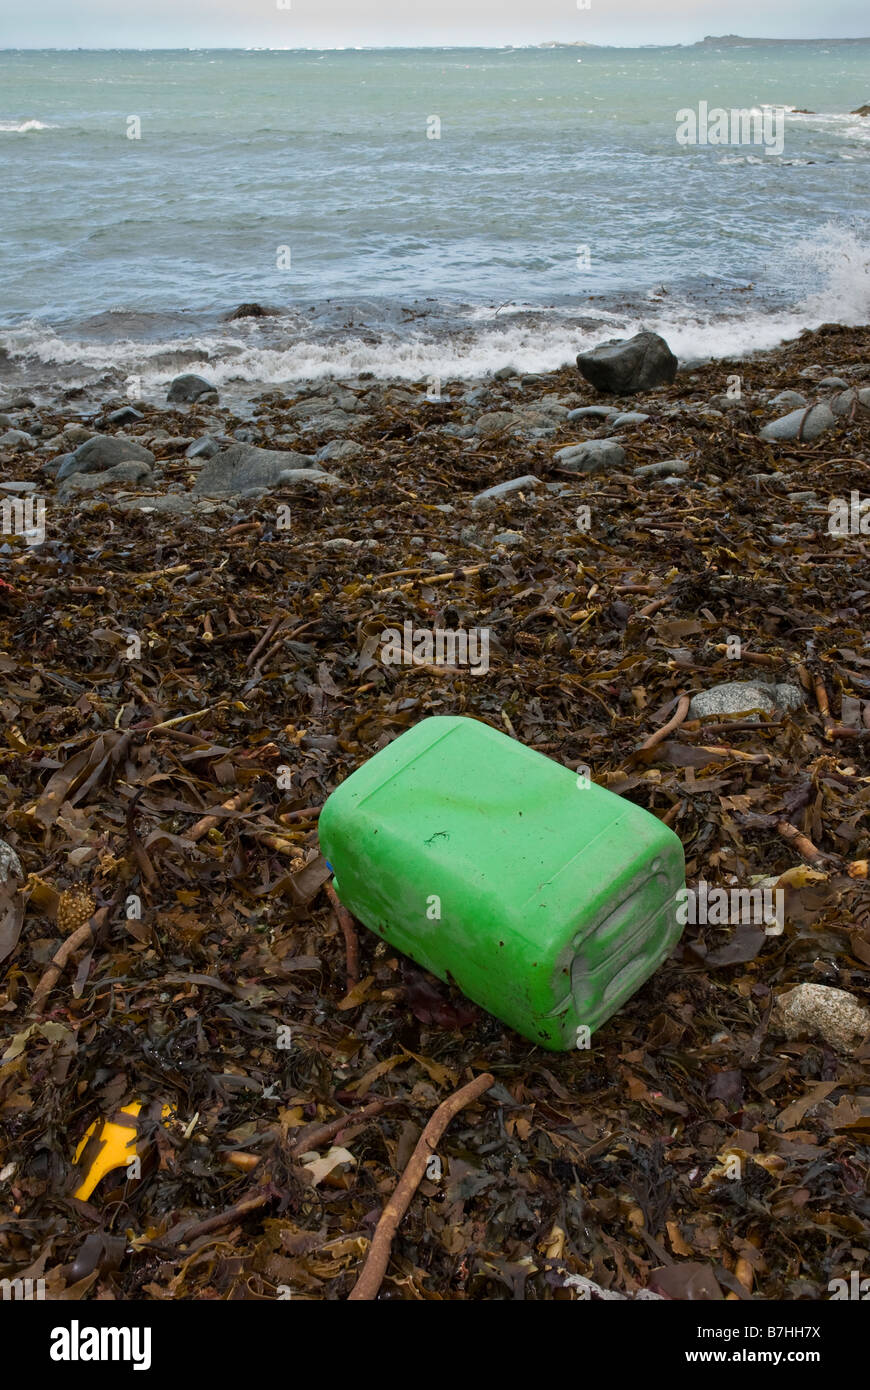 Chemical container with corrosive warning symbol washed up on seaweed covered beach. - Stock Image